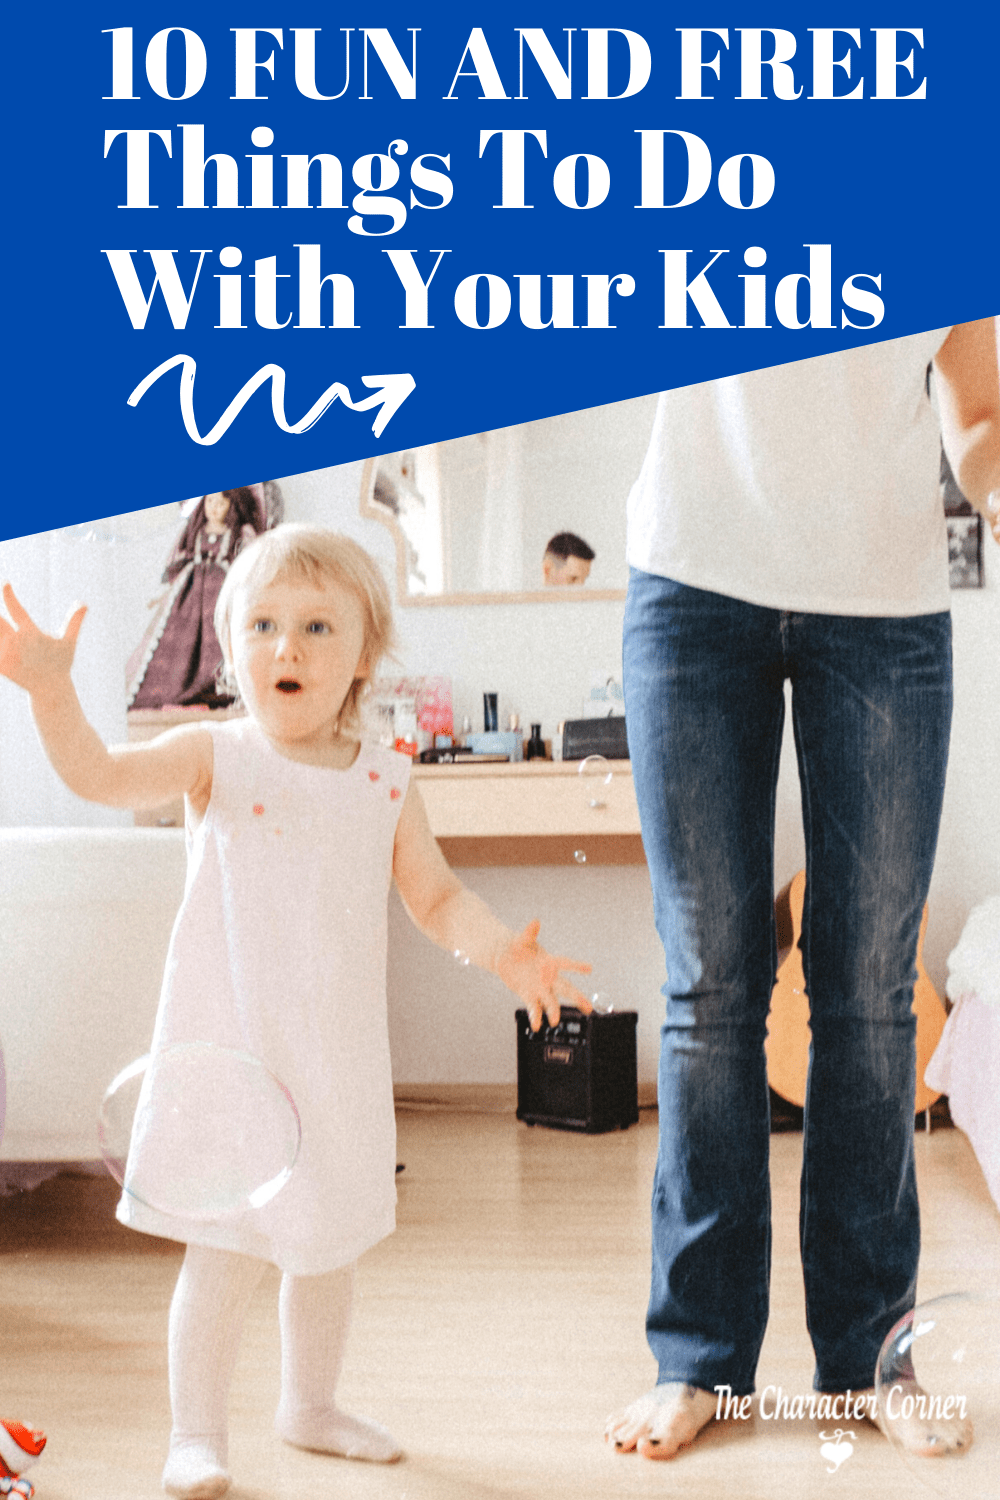 10 Fun And Free Things To Do With Your Kids The Character Corner